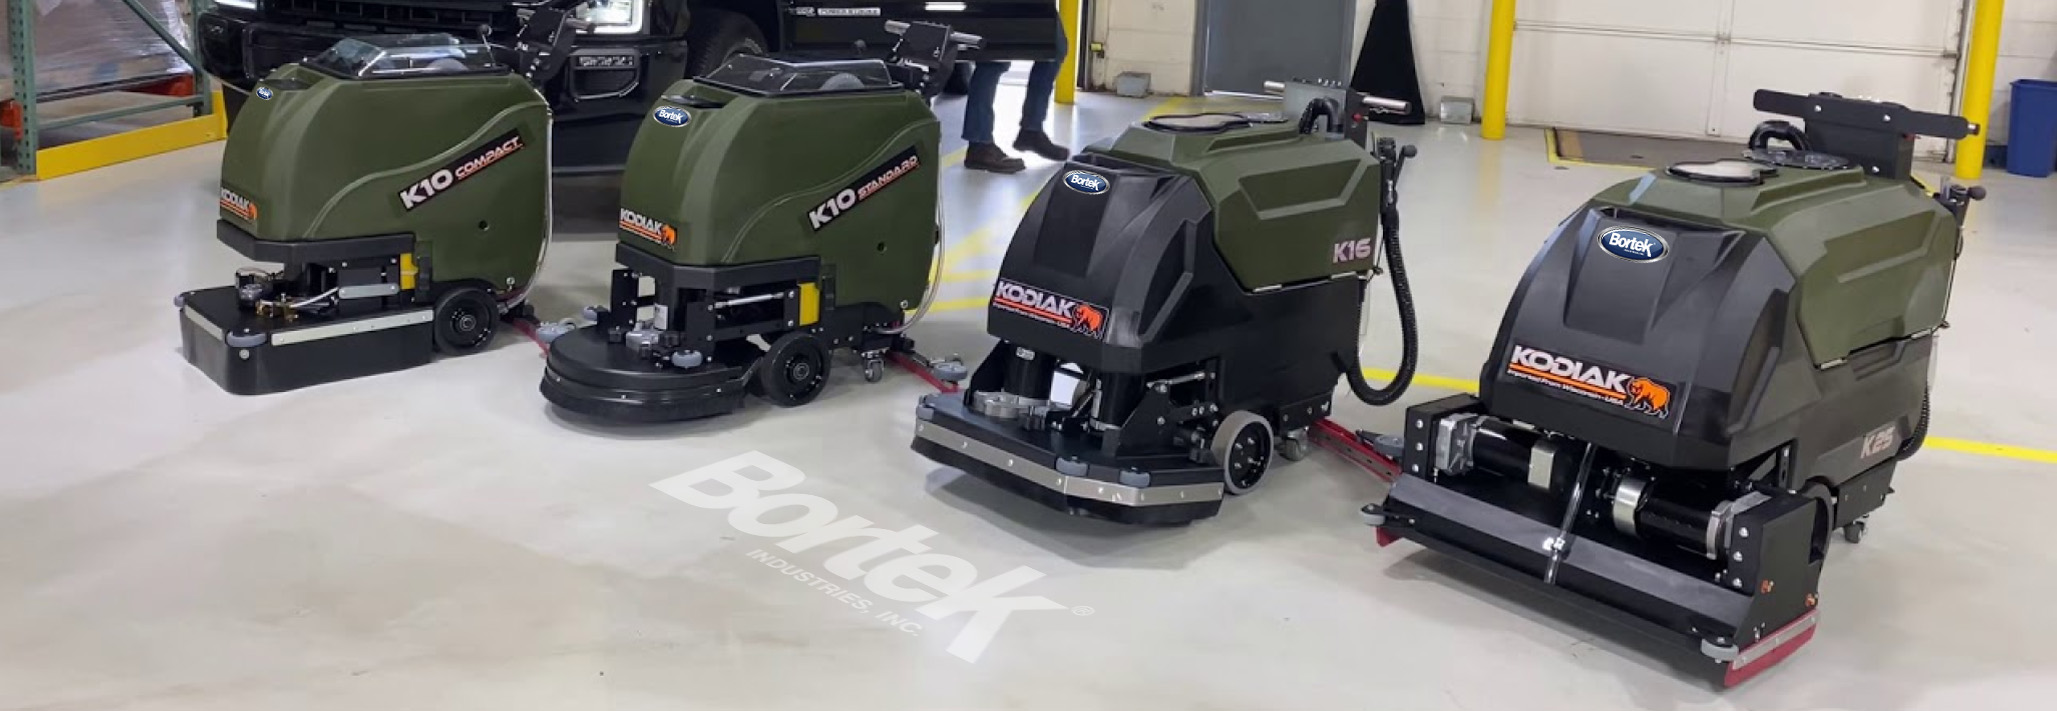 Kodiak Floor Scrubbers- Affordable Cleaning Machines- USA- Bortek Industries Inc